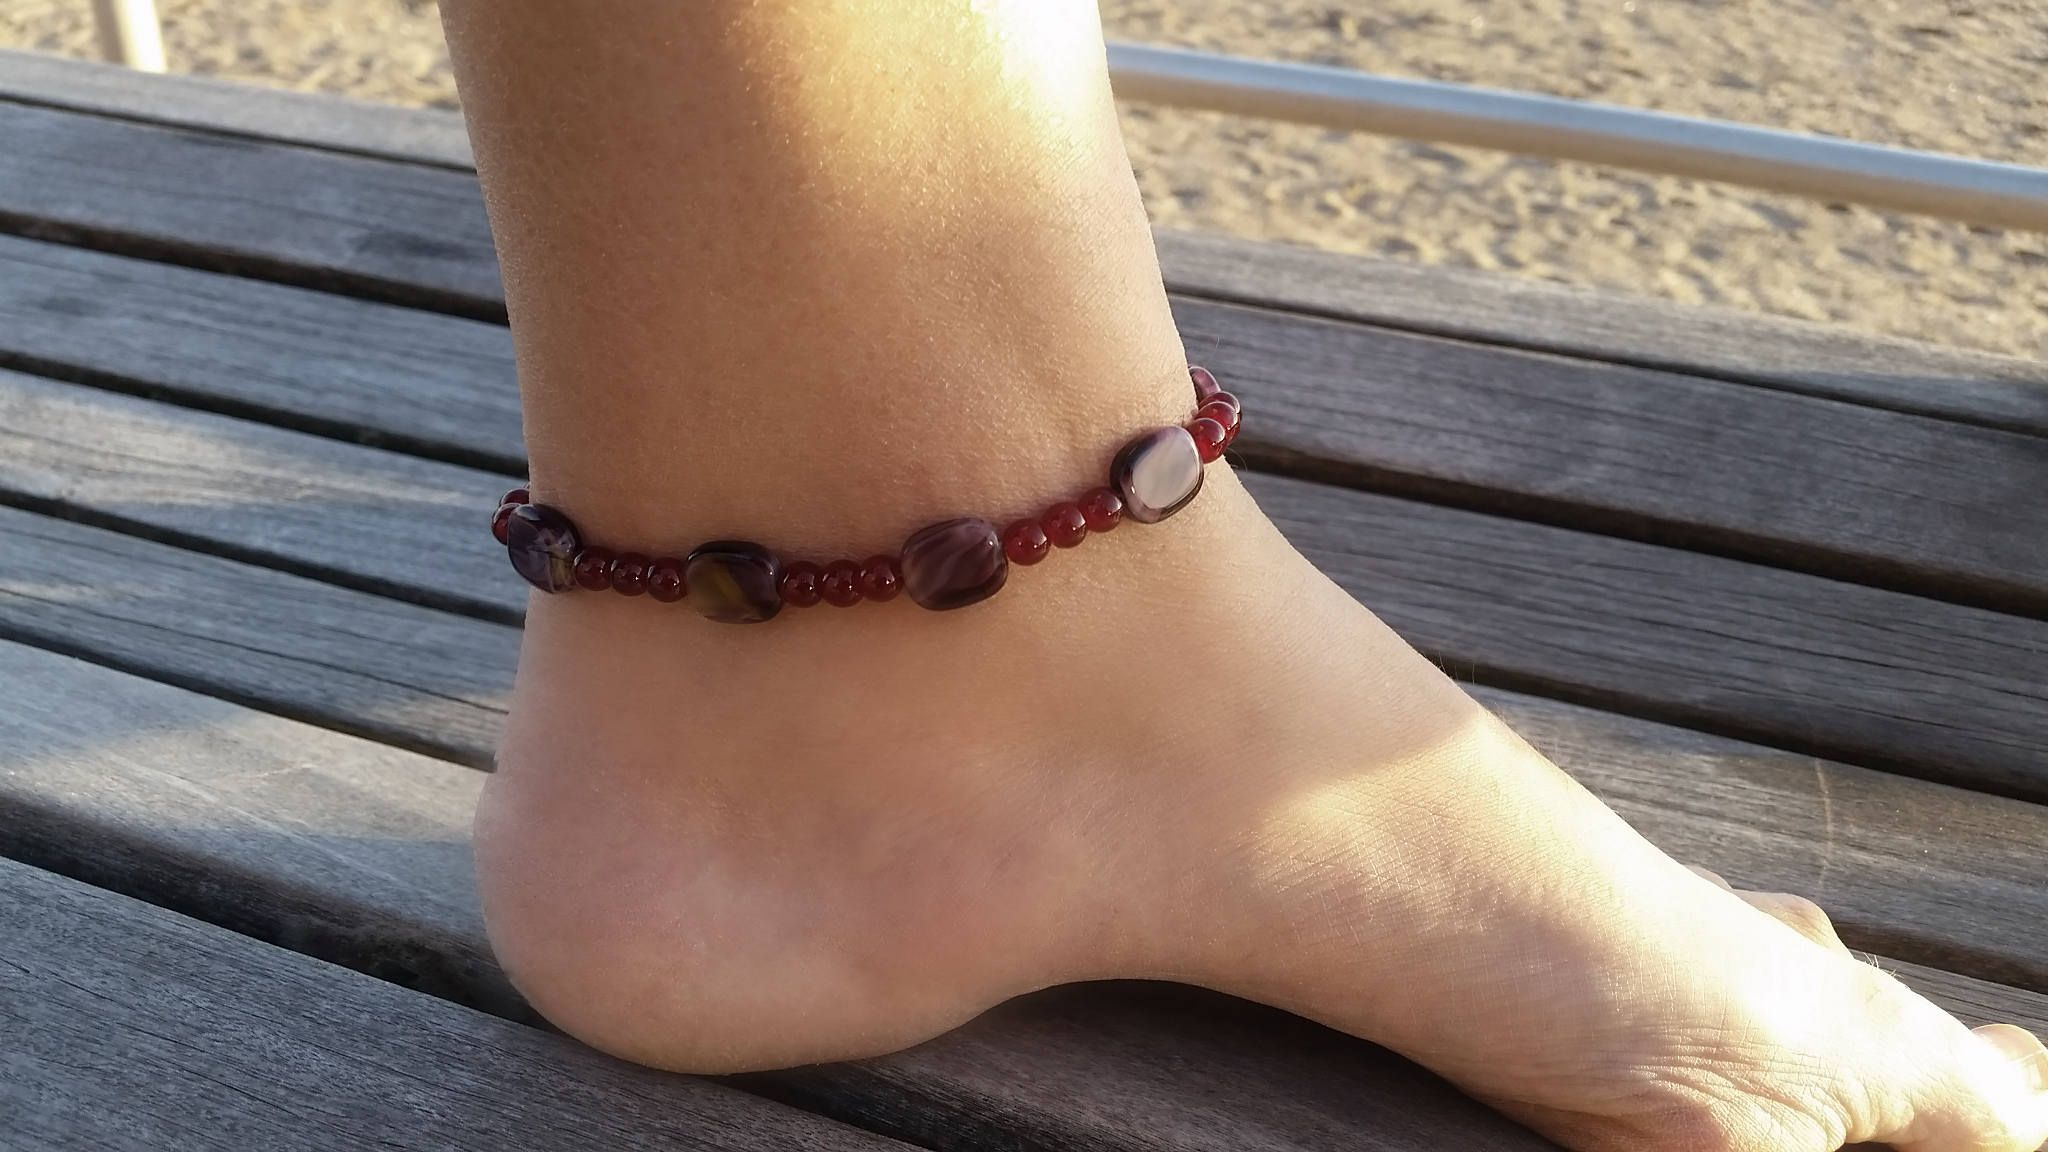 pin ankle women gifts bracelet jewelry beaded teen anklets for her small anklet